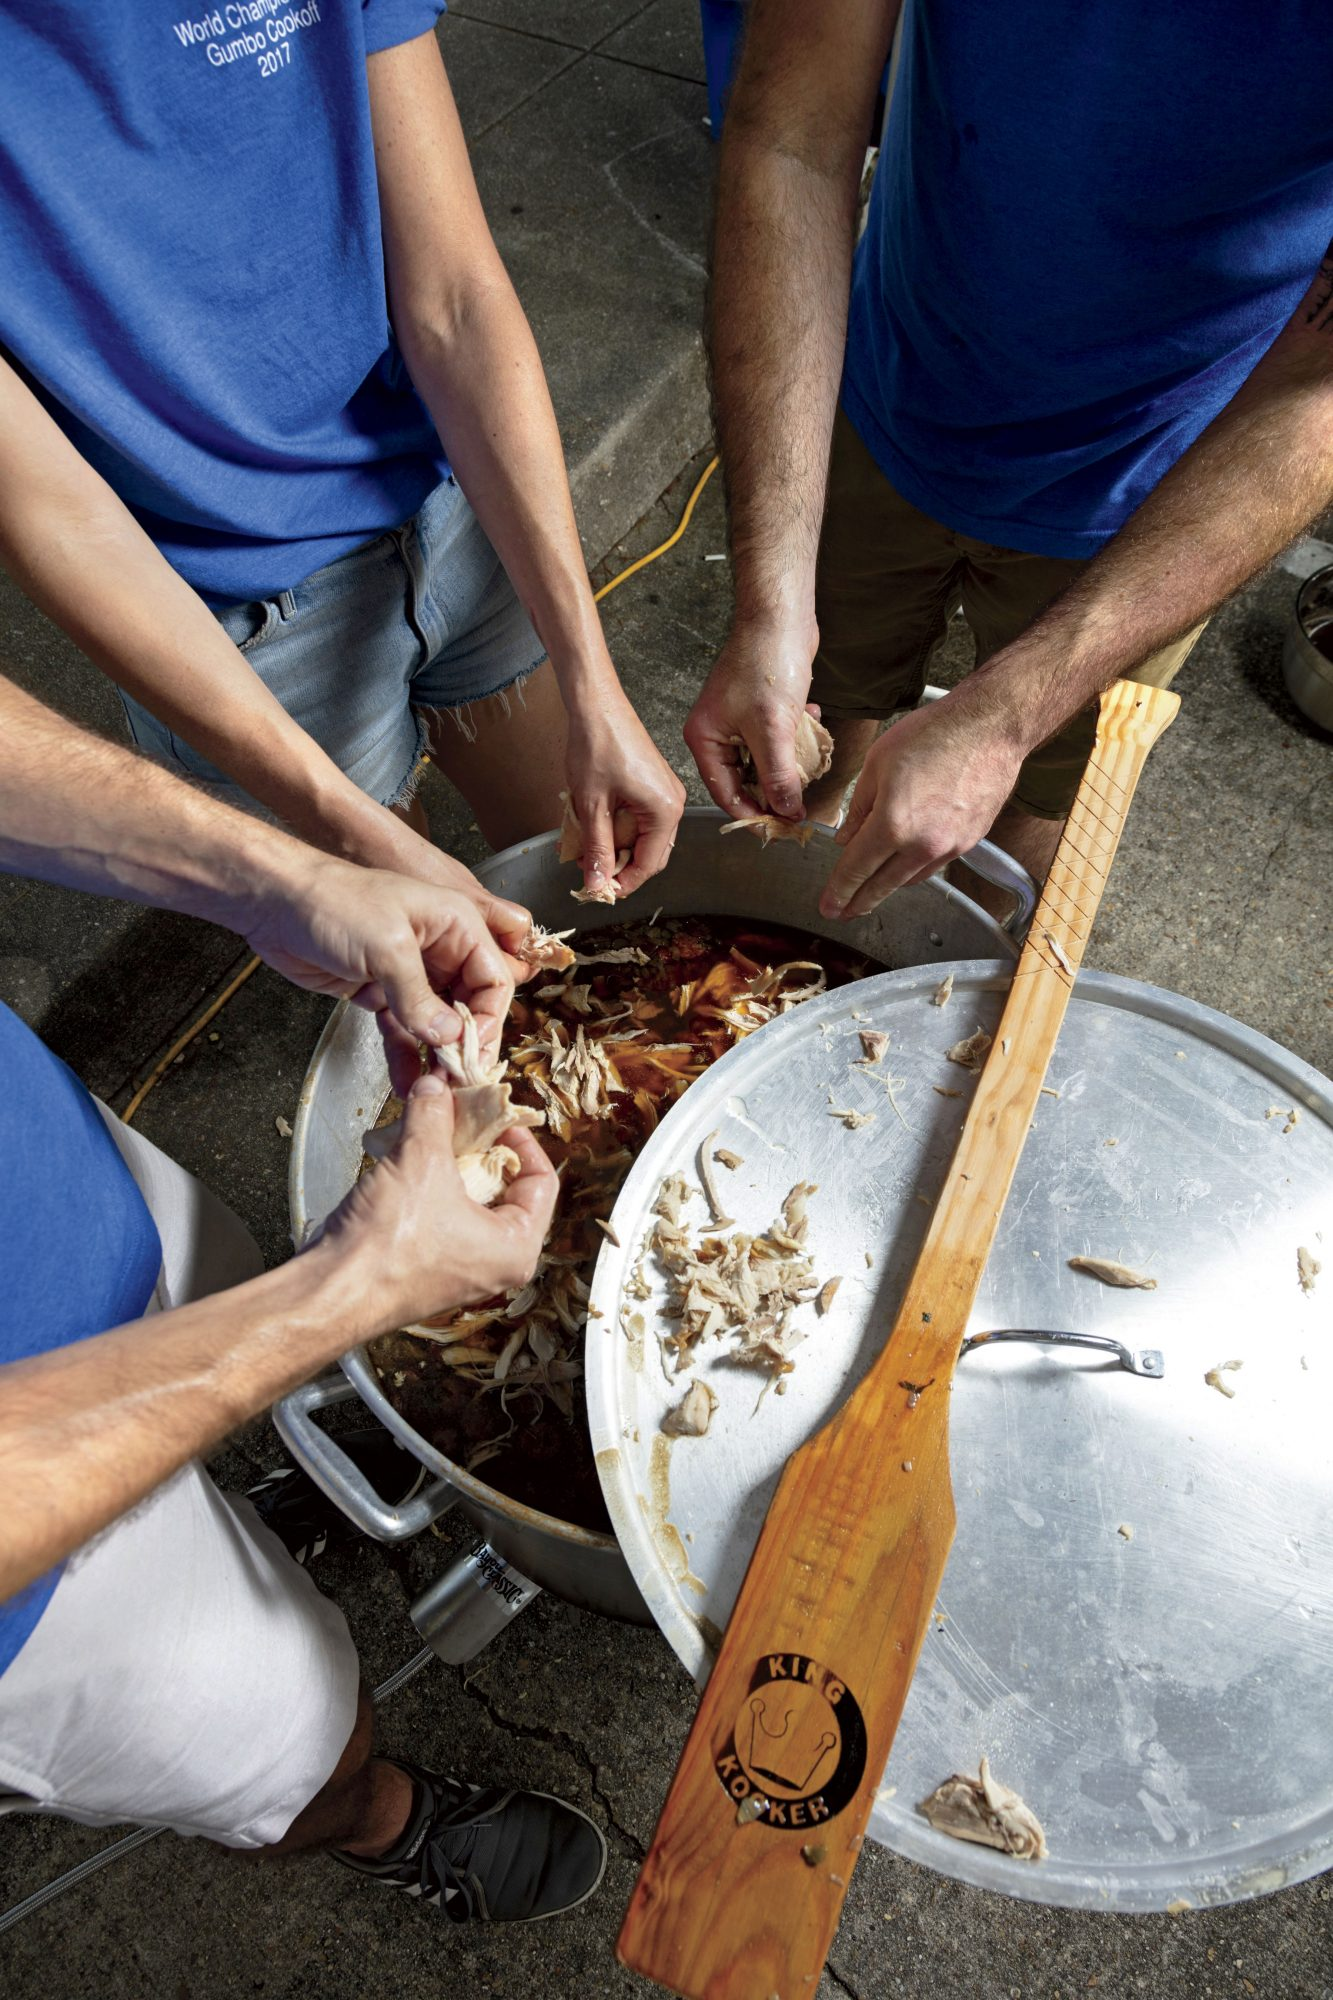 Picking Apart for Gumbo at the New Iberia Cookoff